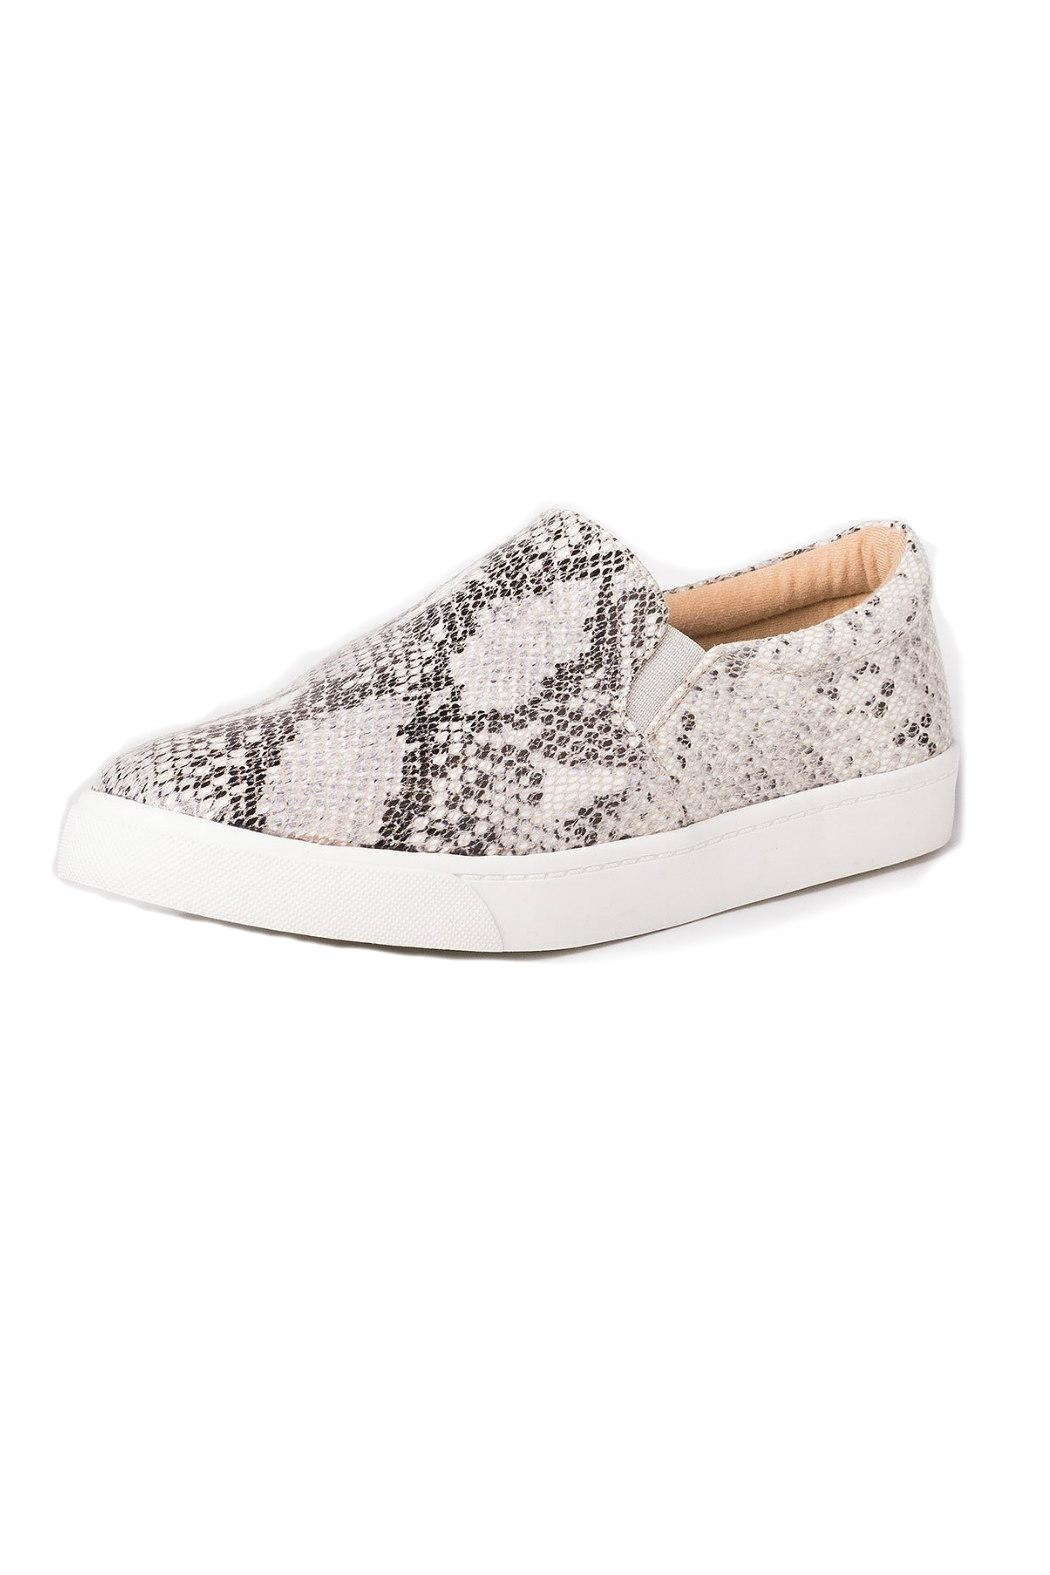 a353081935d Soda Reign Snakeskin Sneaker from Statesboro by Sole — Shoptiques